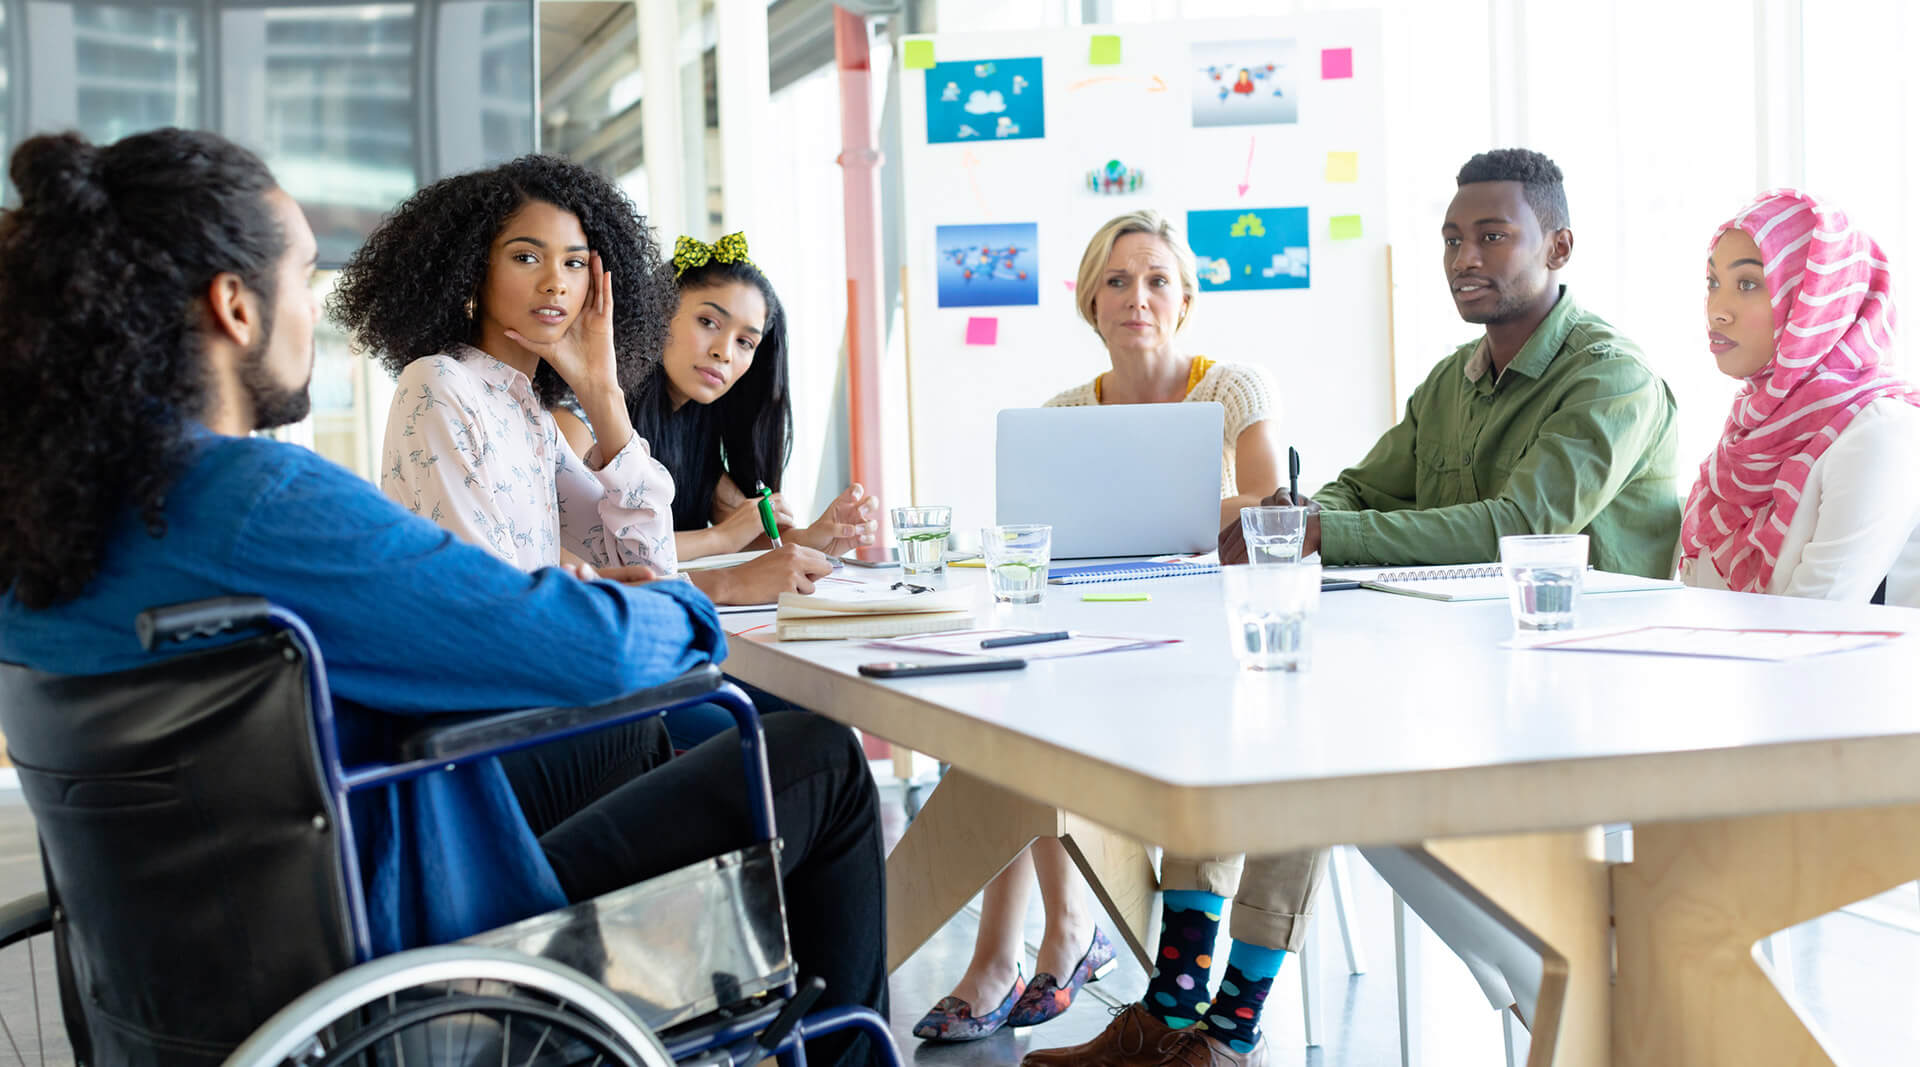 Group of Mixed Ability People in a Meeting